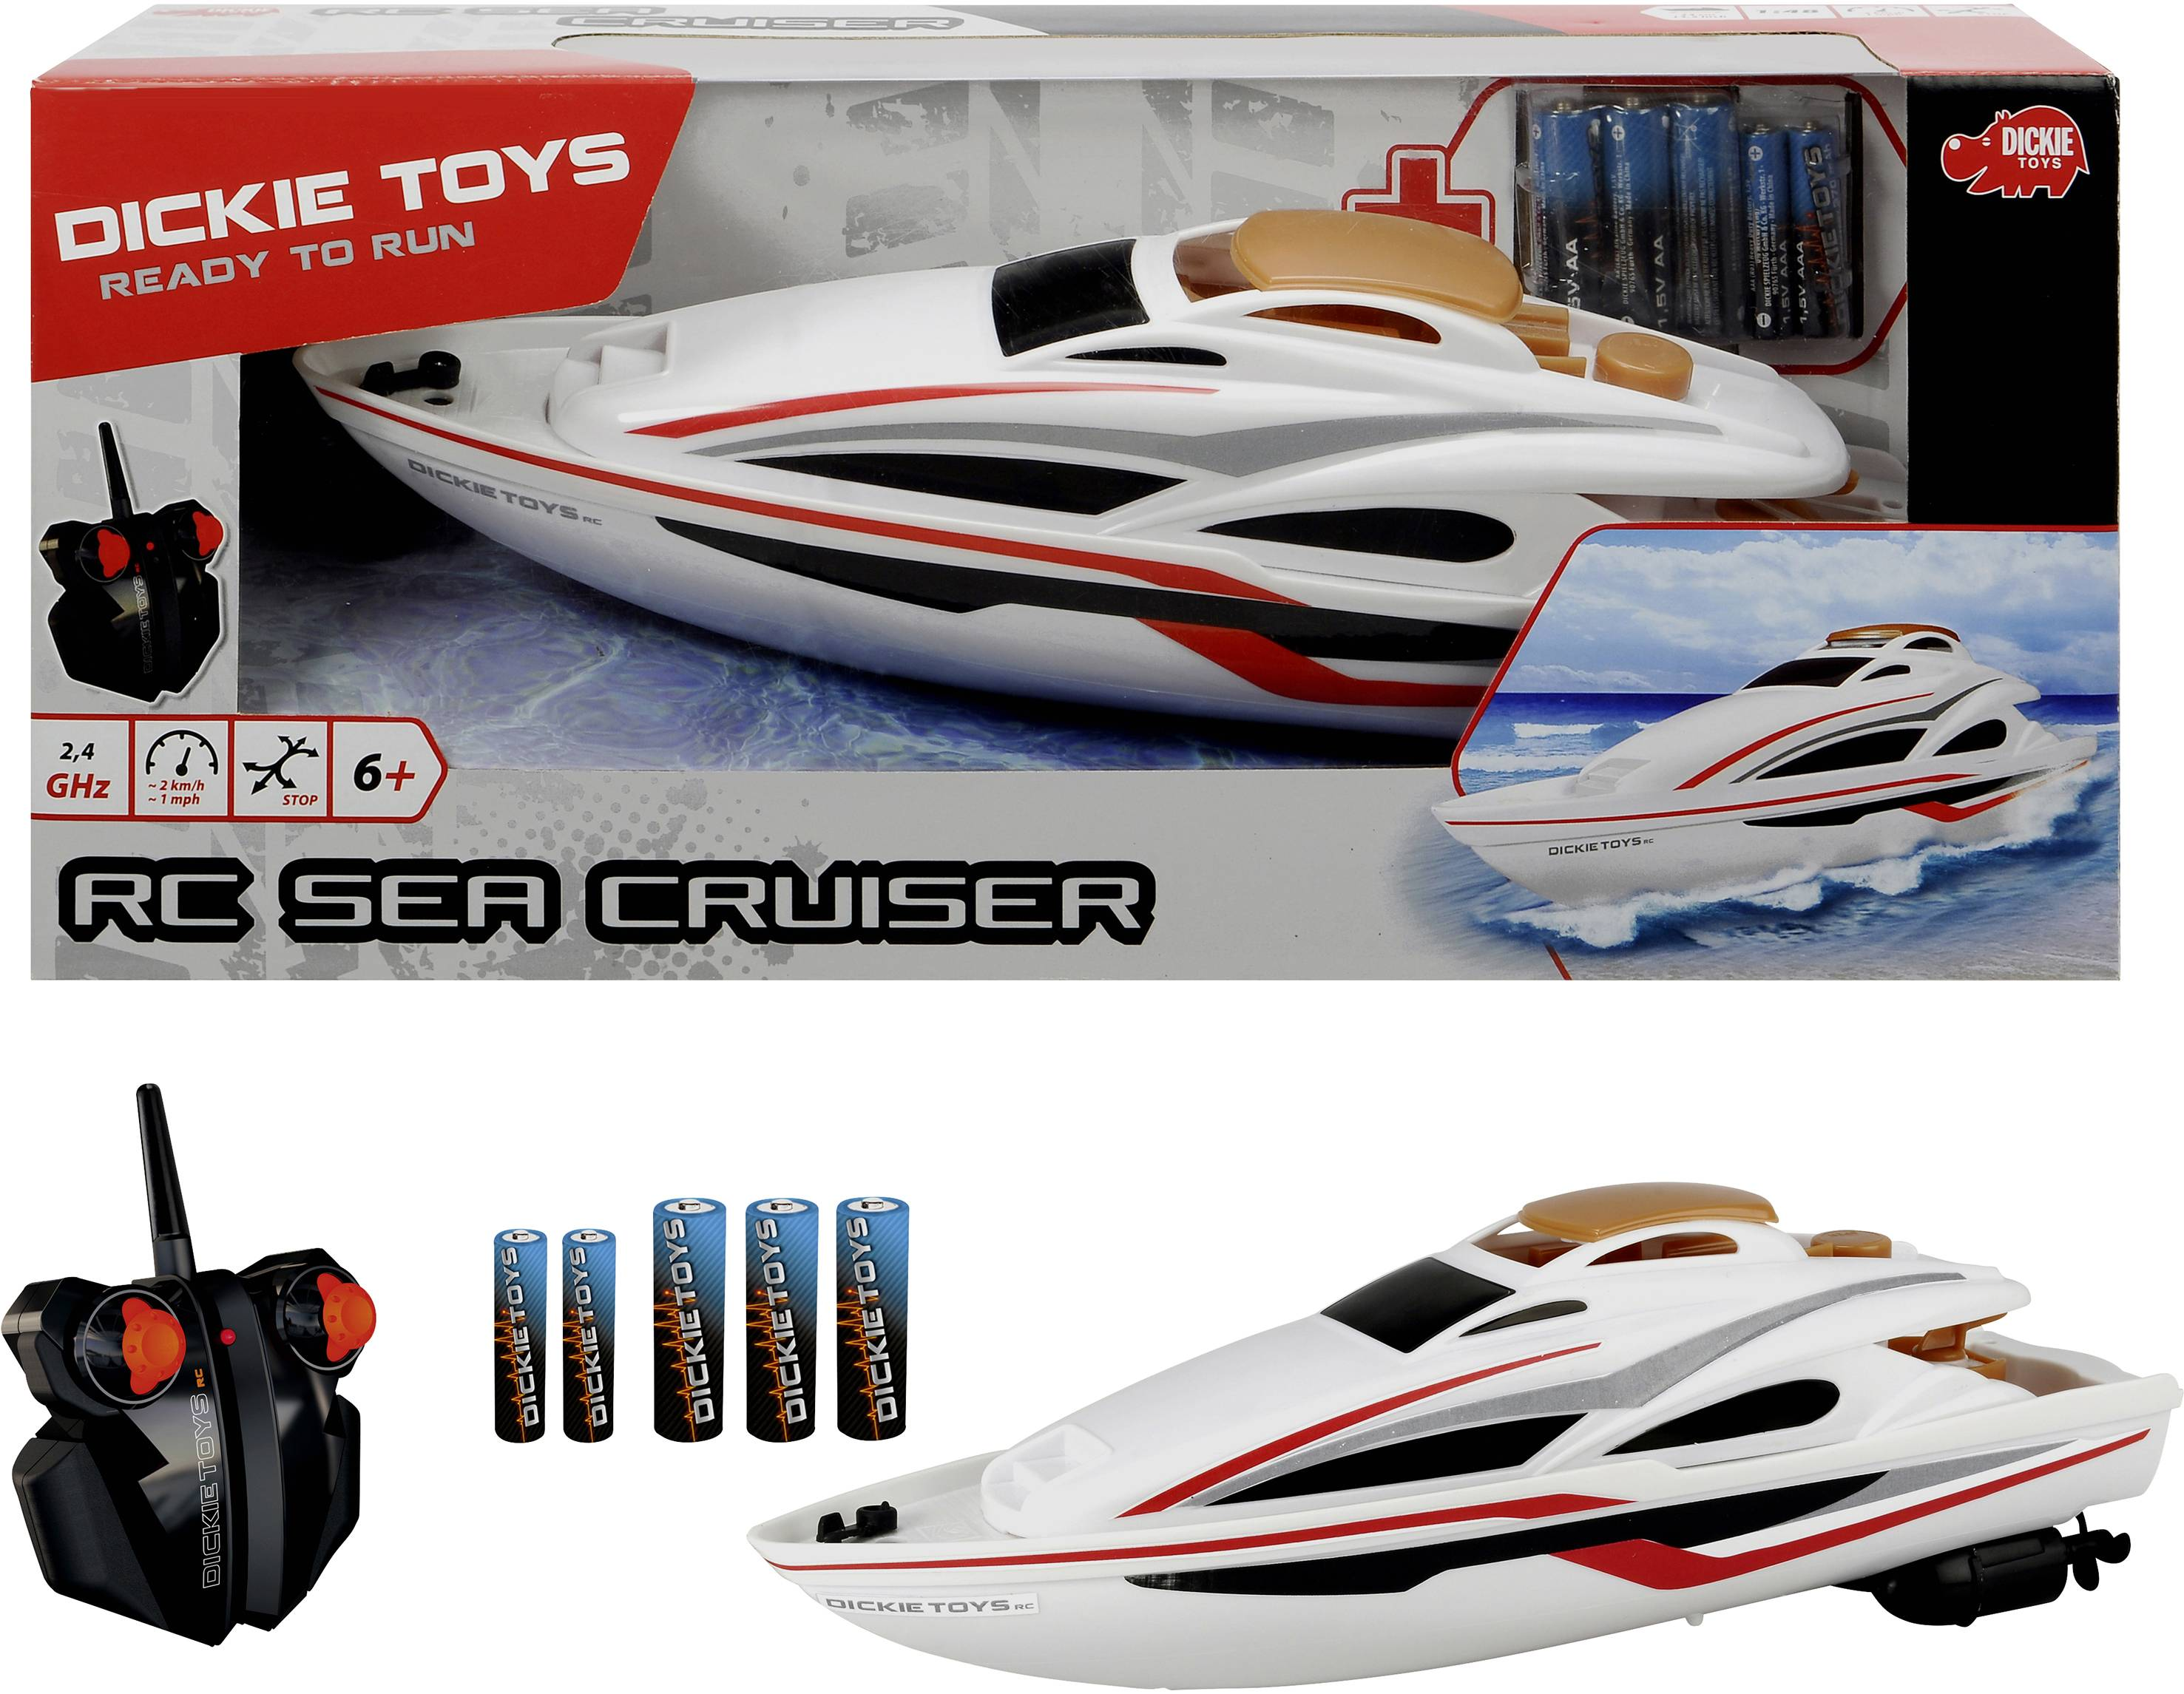 LANCHA RC SEA CRUISER 1119551